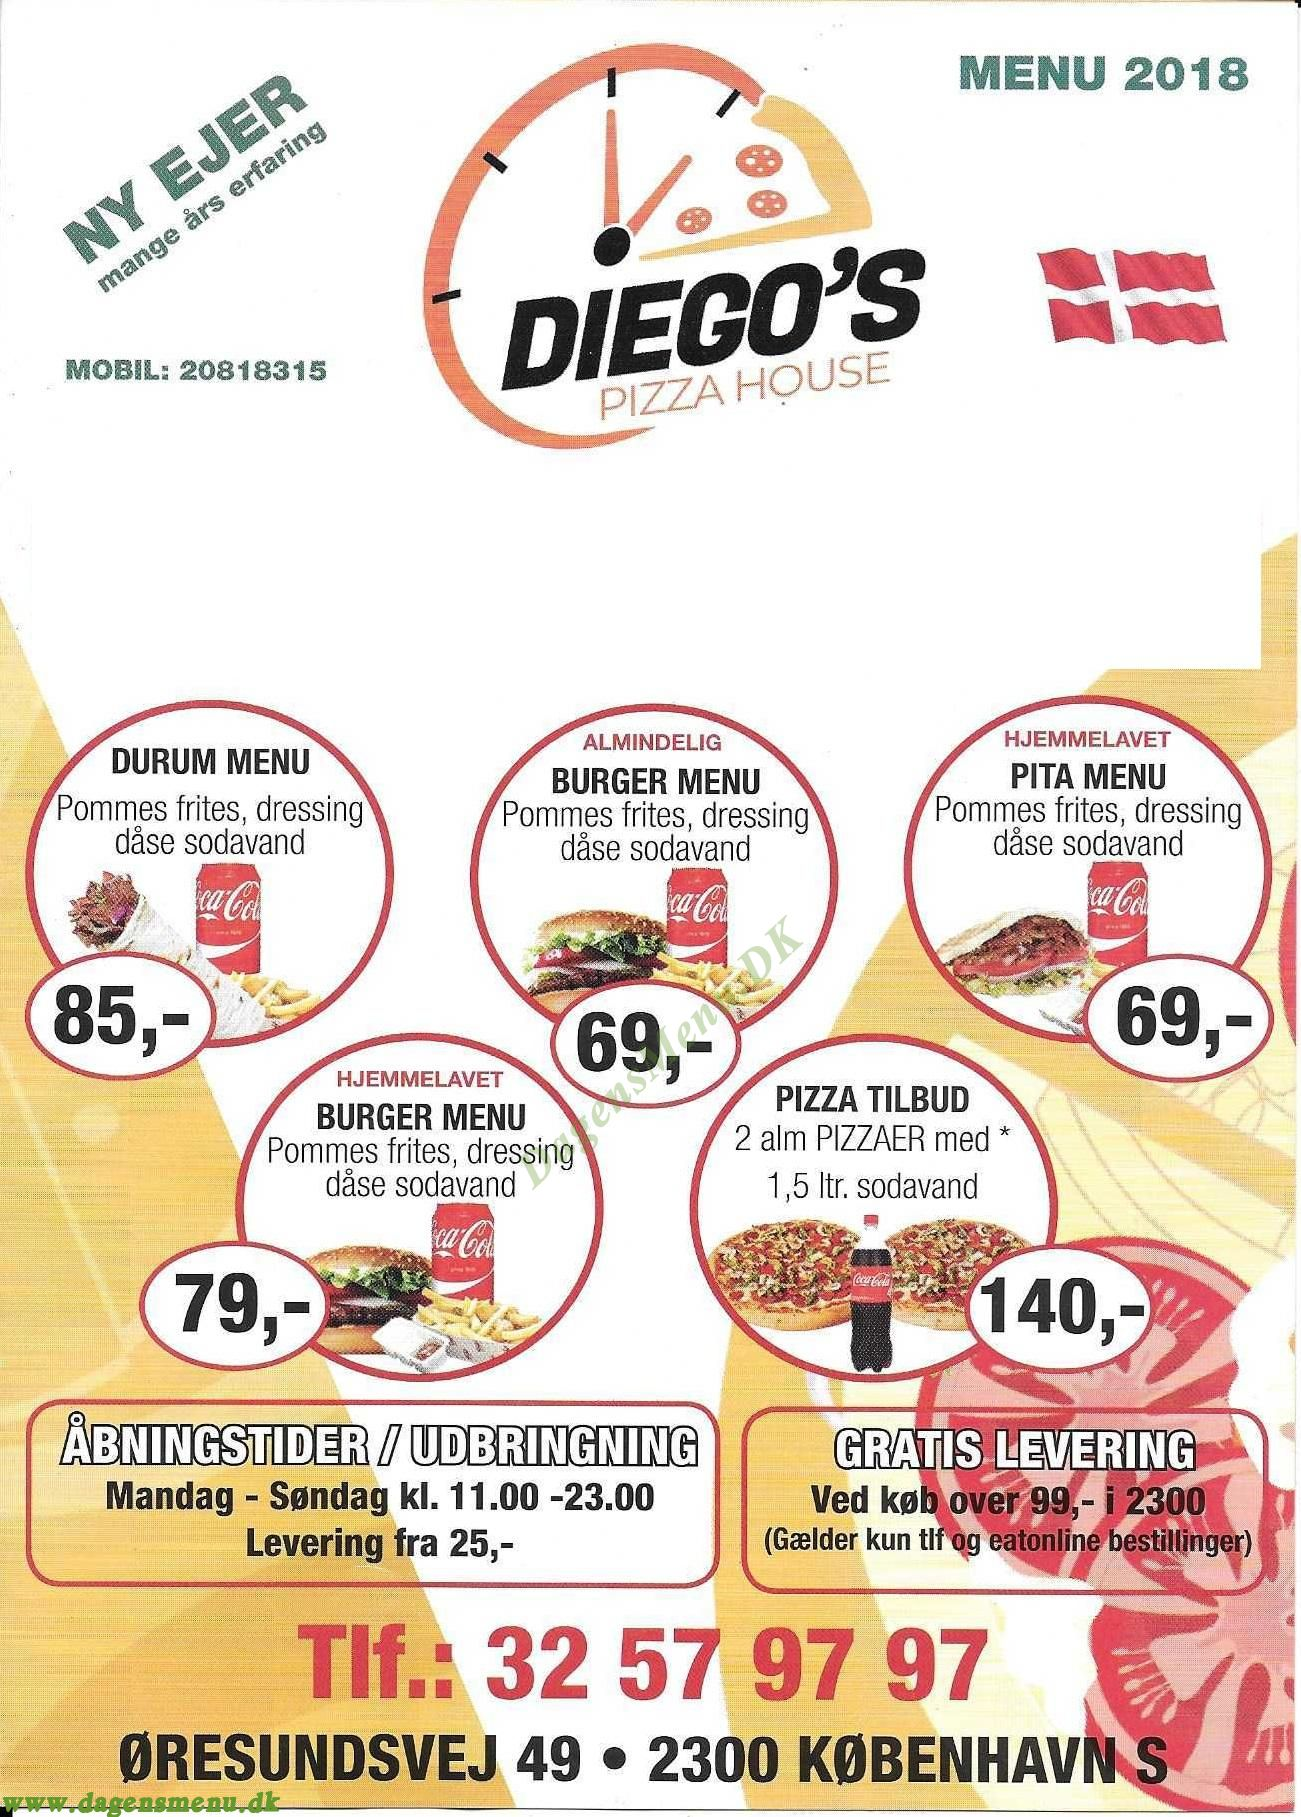 Diegos Pizza House - Menukort